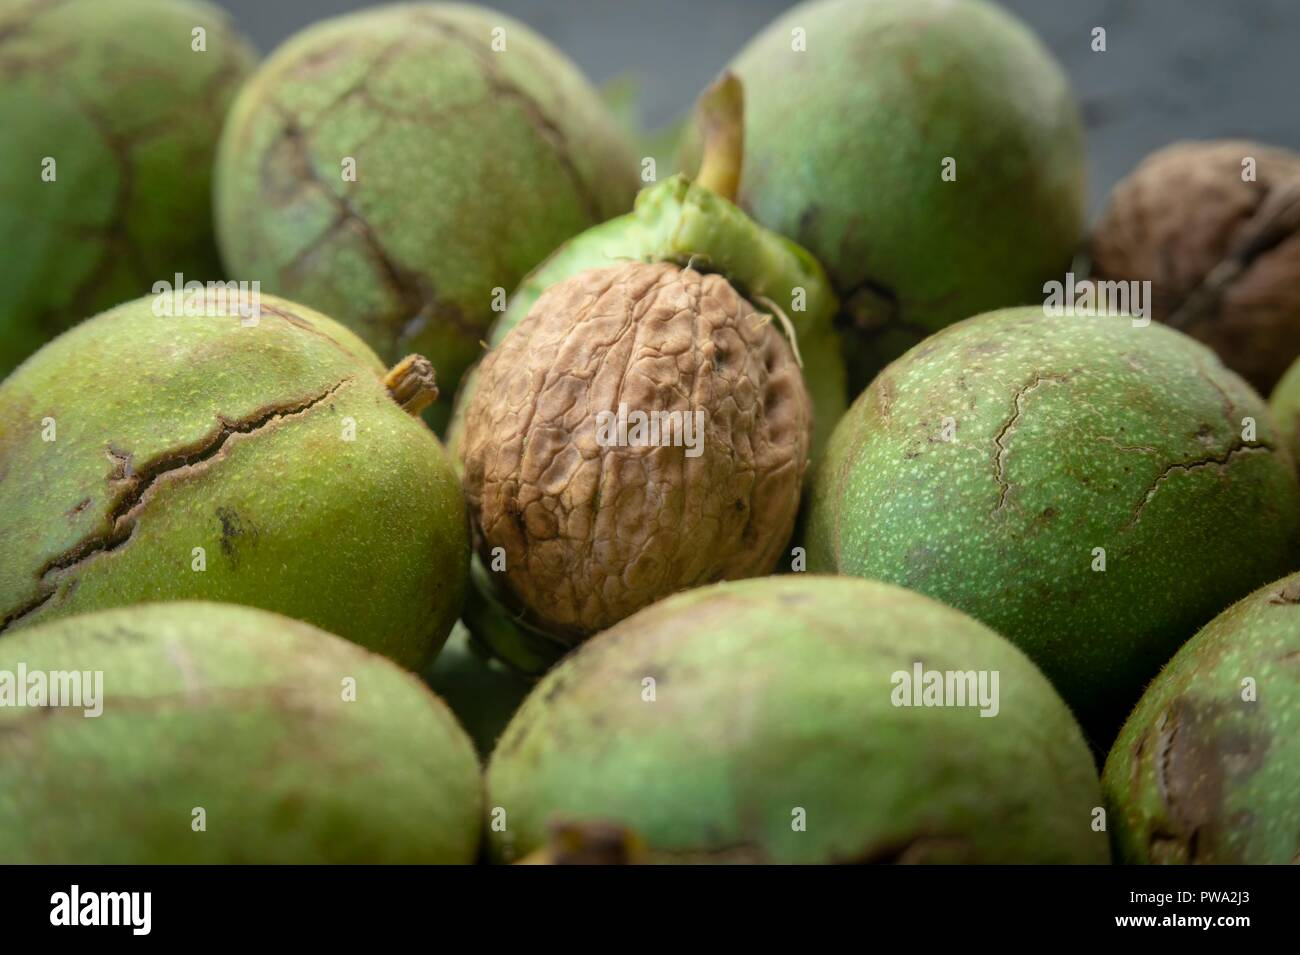 Fresh harvest of walnuts (Juglans regia) in a green shell. Shell and peel of walnuts, when are walnuts ready to pick concept Stock Photo